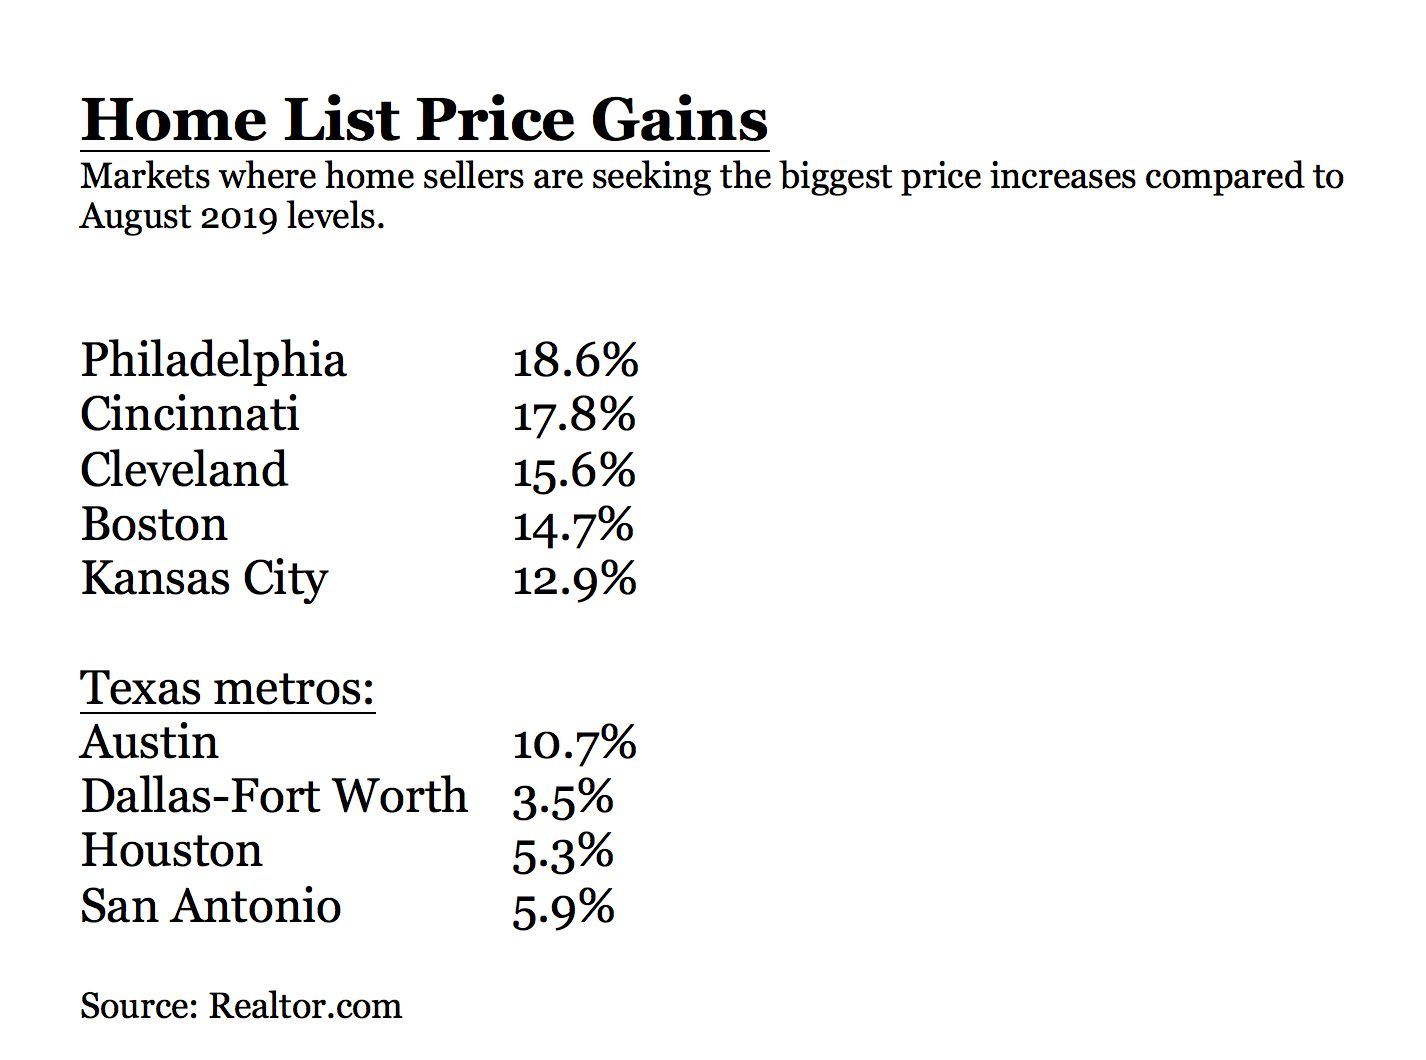 Dallas-Fort Worth had the smallest year-over-year home asking price increases among major Texas markets.